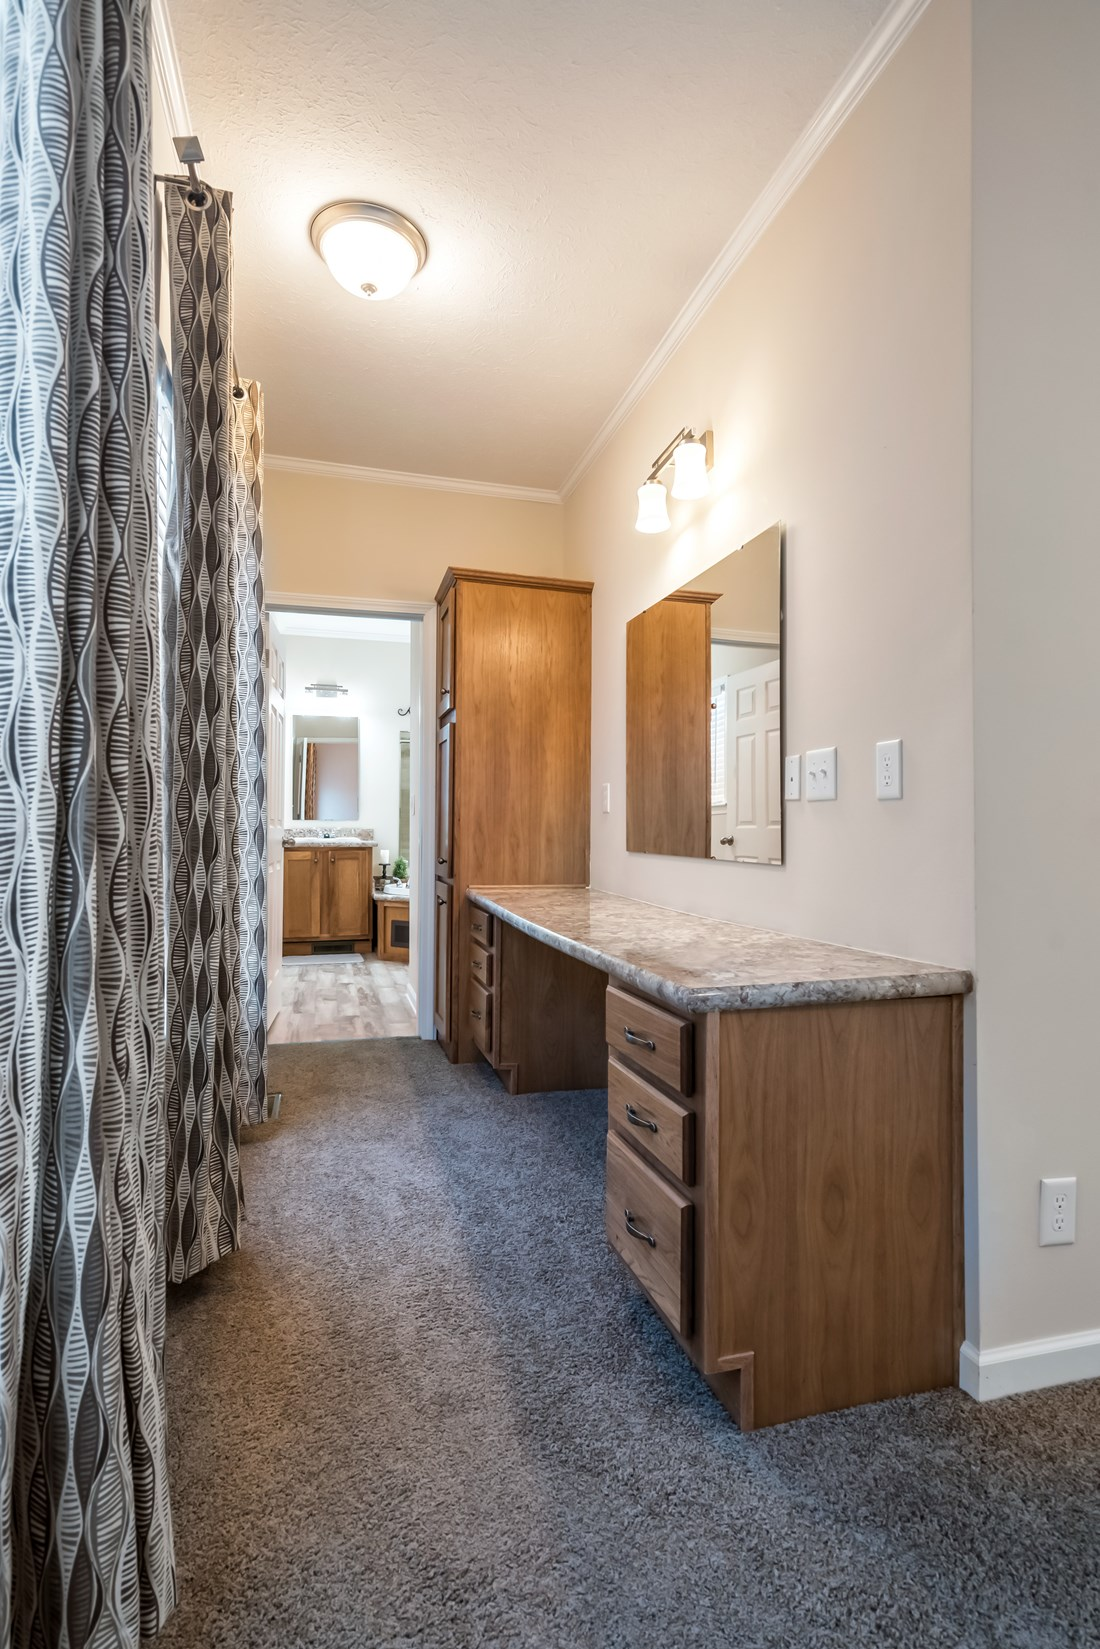 The 2914 HERITAGE Study Nook. This Manufactured Mobile Home features 3 bedrooms and 2 baths.